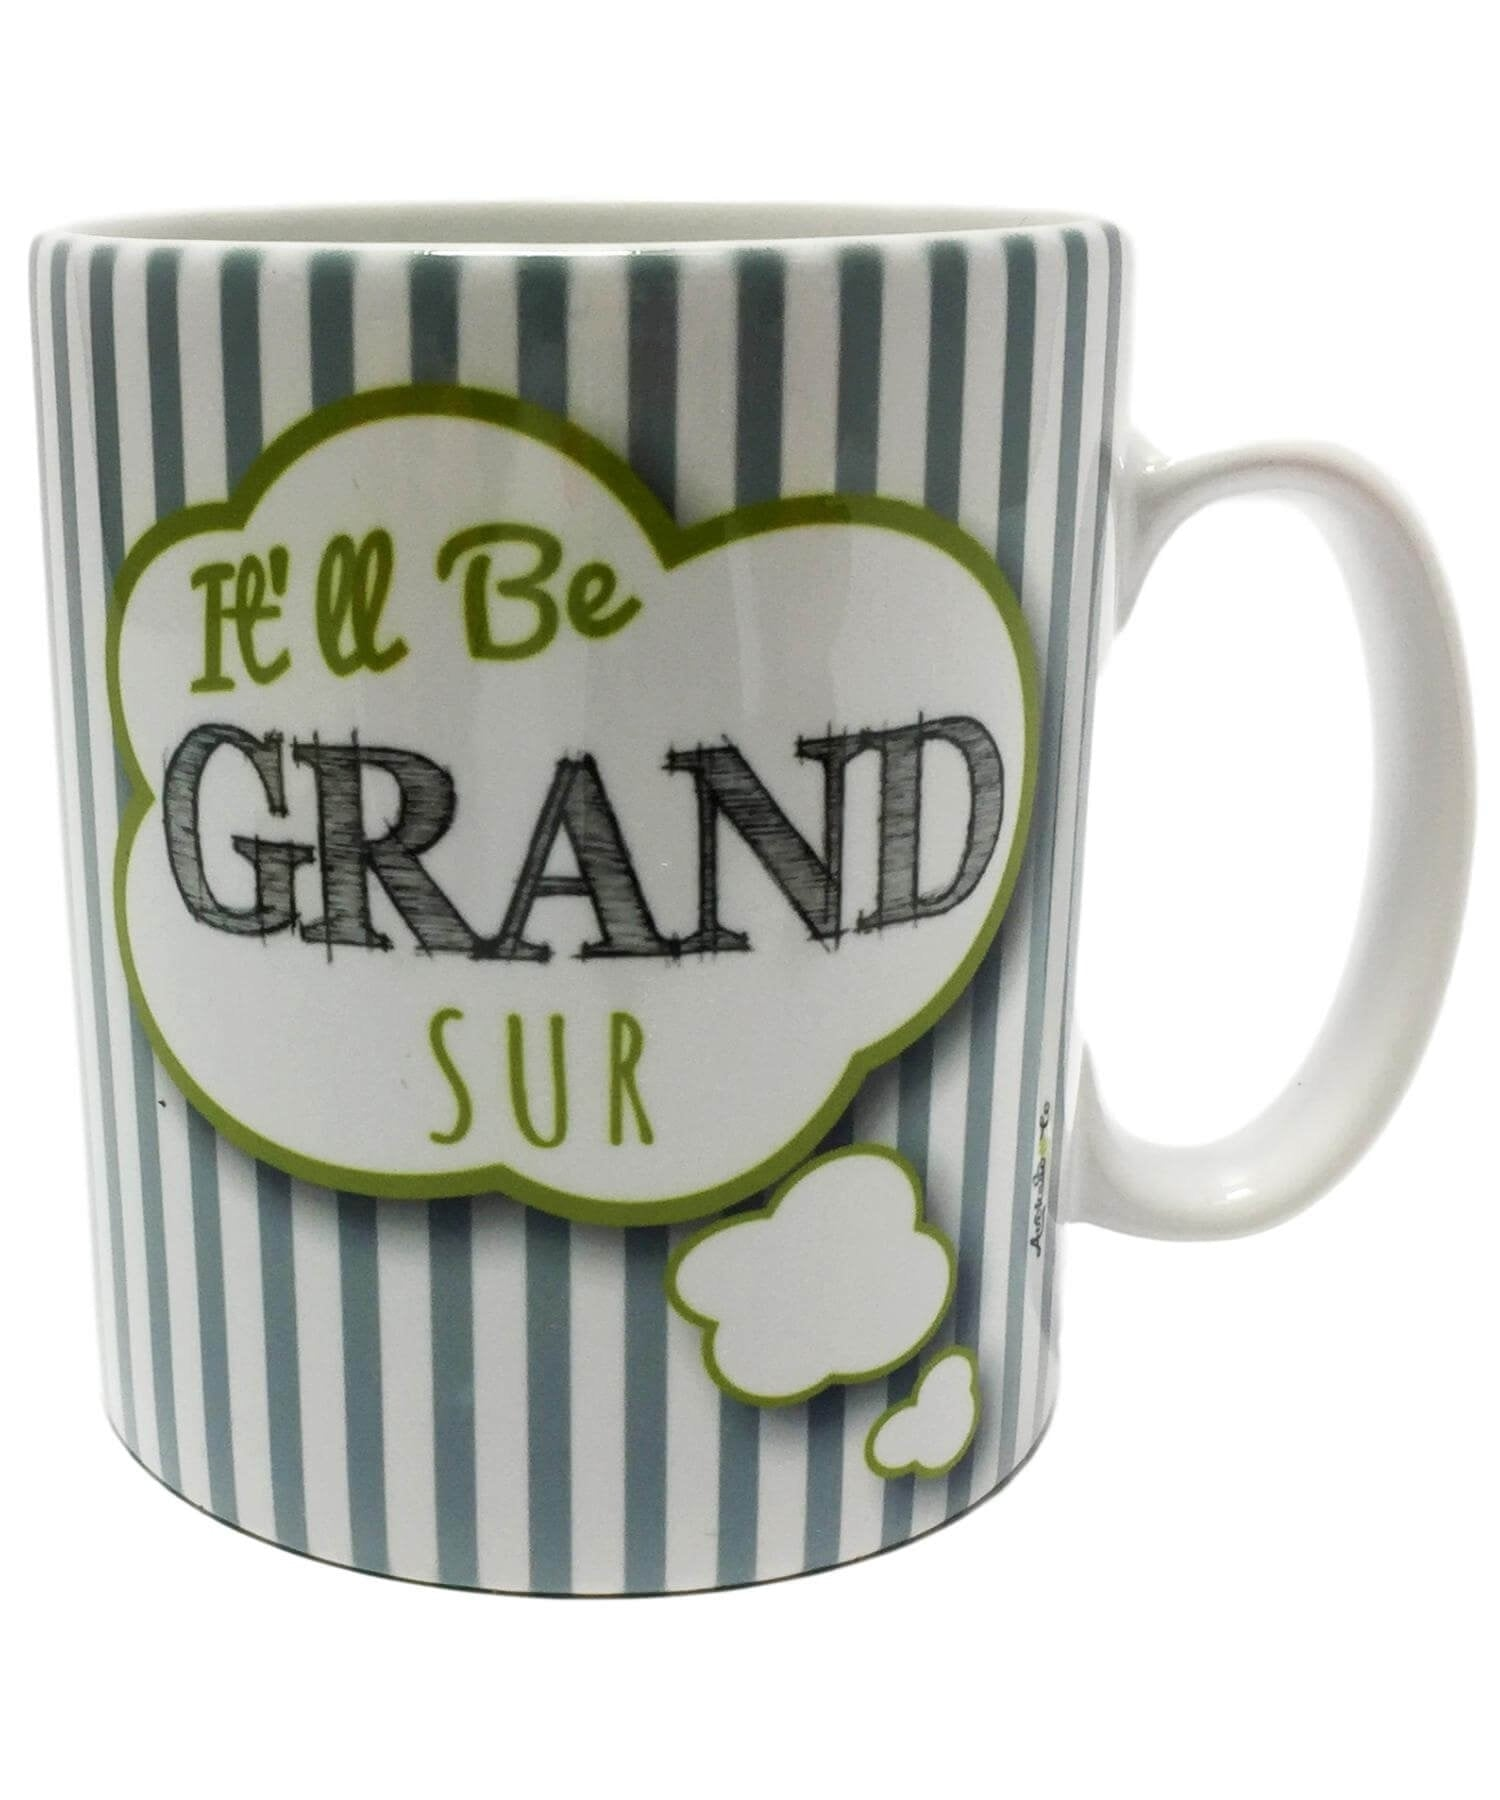 Irish Saying Cup - Grand Sur Avokado & Co Souvenir